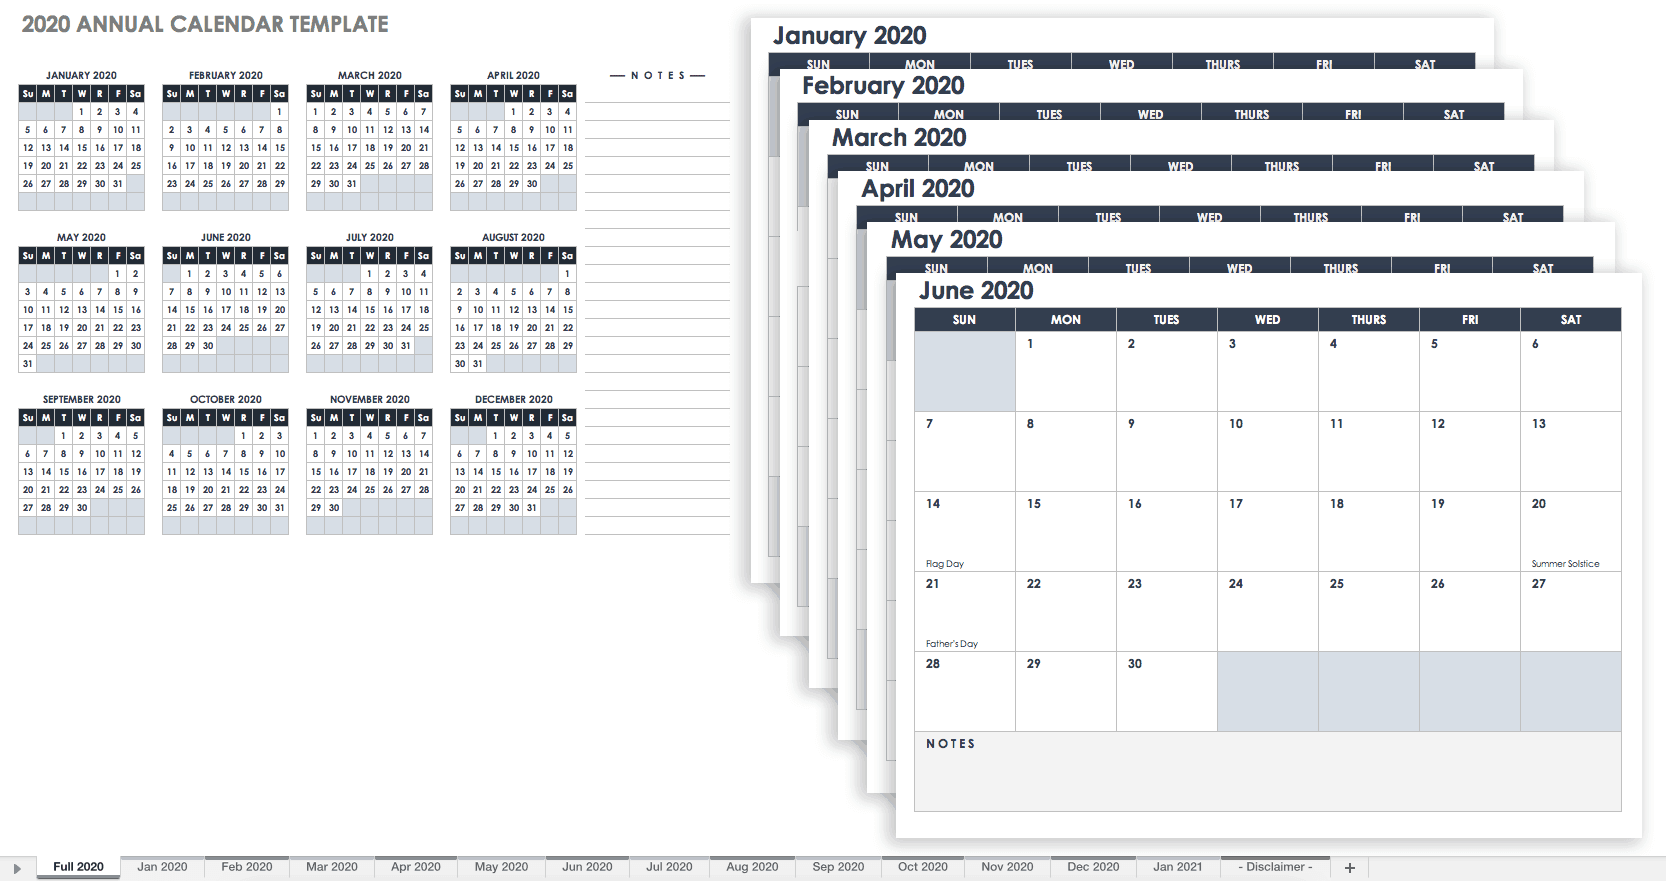 Calendar By Month 2020 Free, Printable Excel Calendar Templates for 2019 & On | Smartsheet